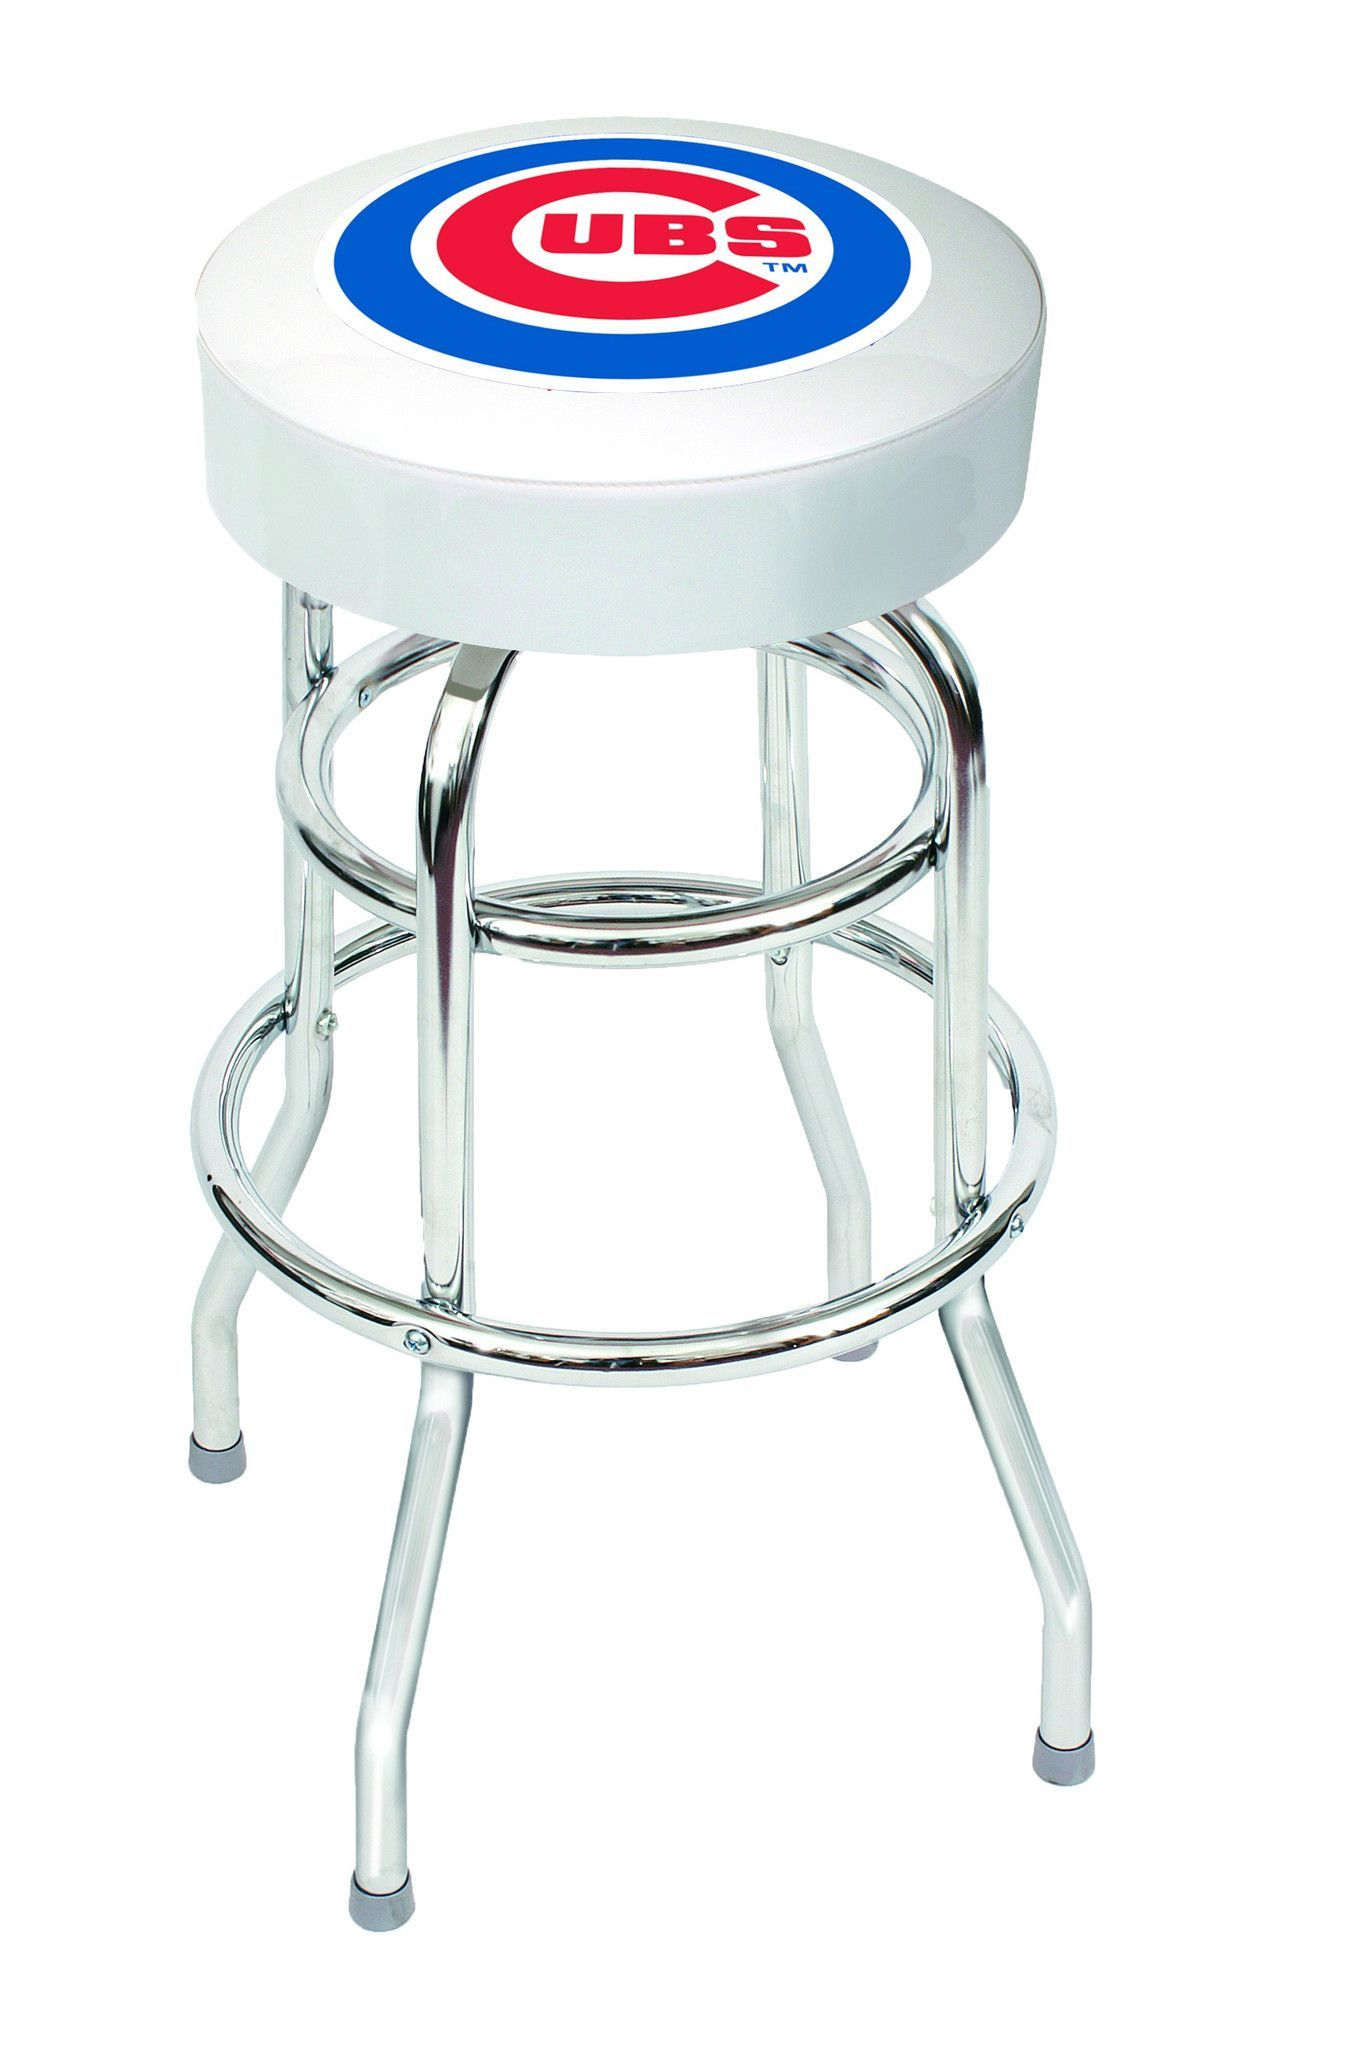 The Chicago Cubs Imperial Usa Bar Stool Chicago Cubs